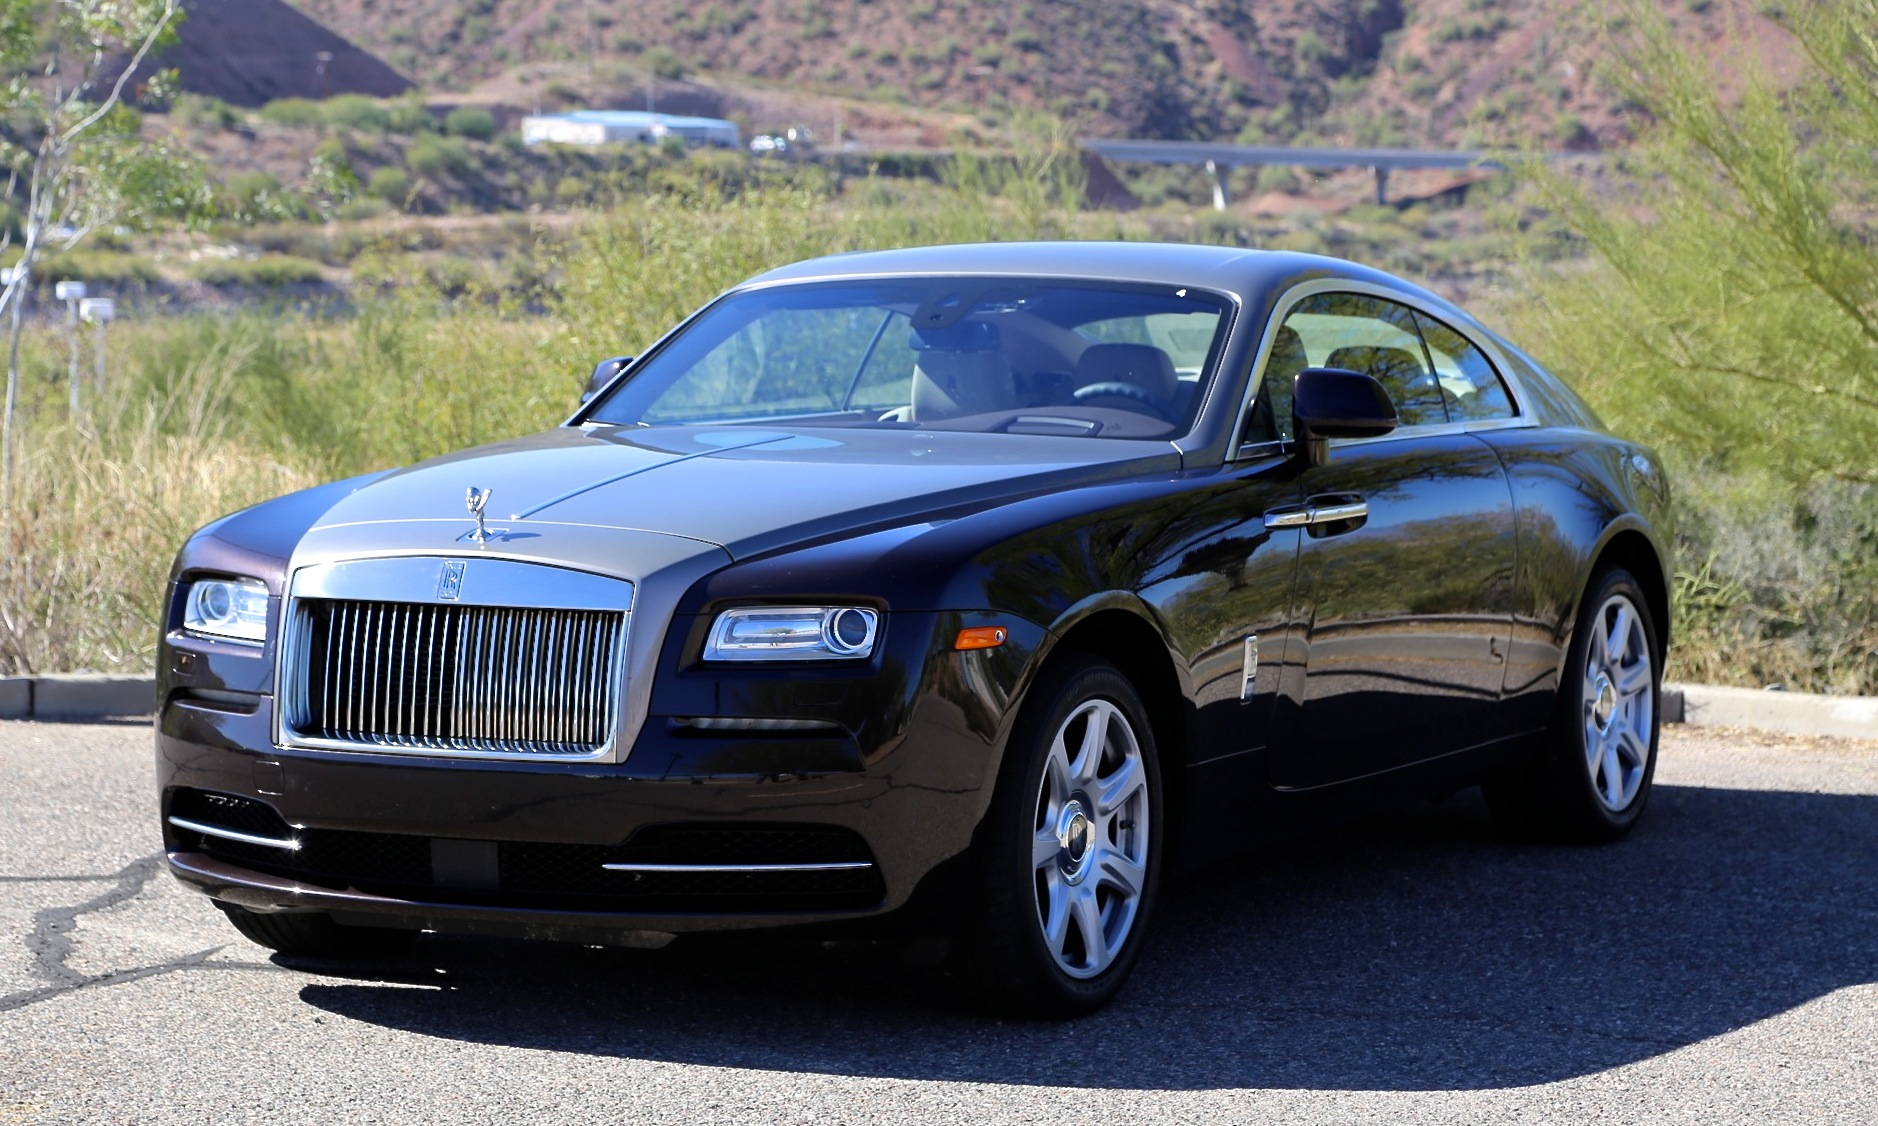 2014 rolls royce wraith first drive review. Black Bedroom Furniture Sets. Home Design Ideas